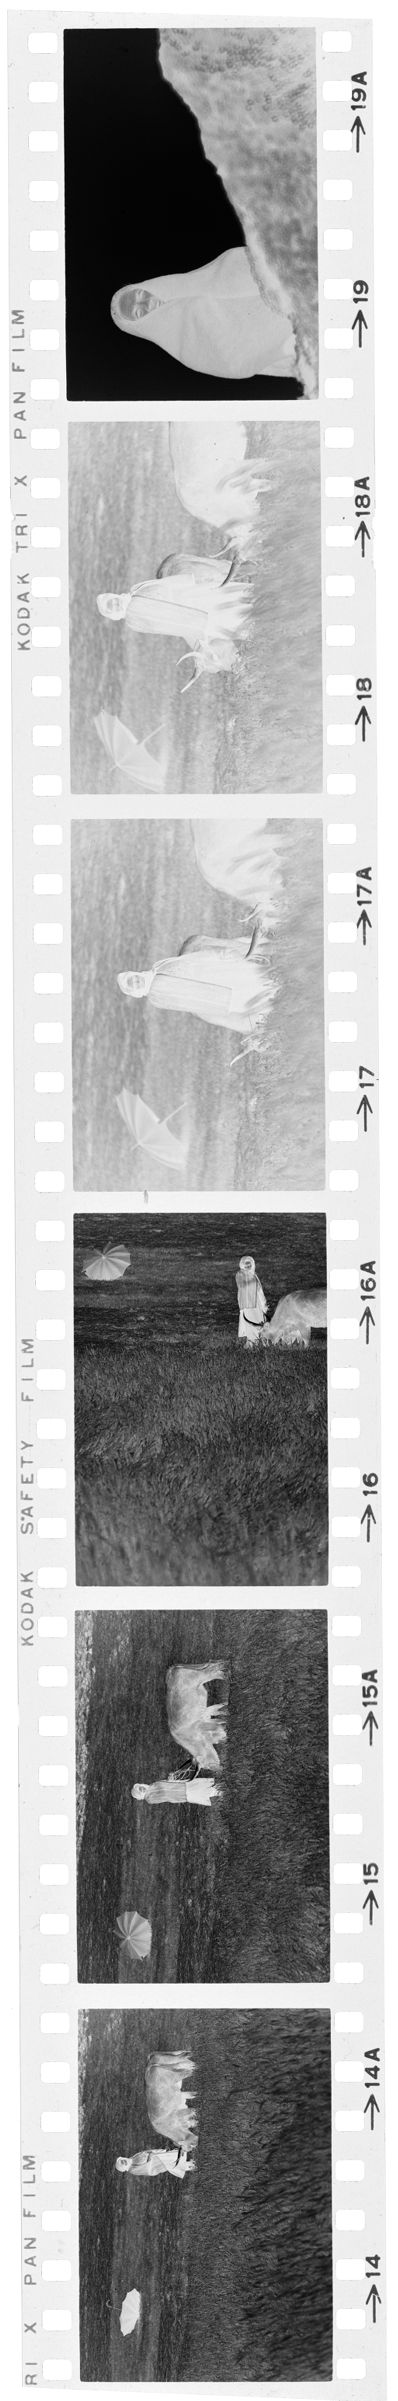 Untitled (Woman With Cows In Grassy Field; Woman By Wall, Nazaré, Portugal)